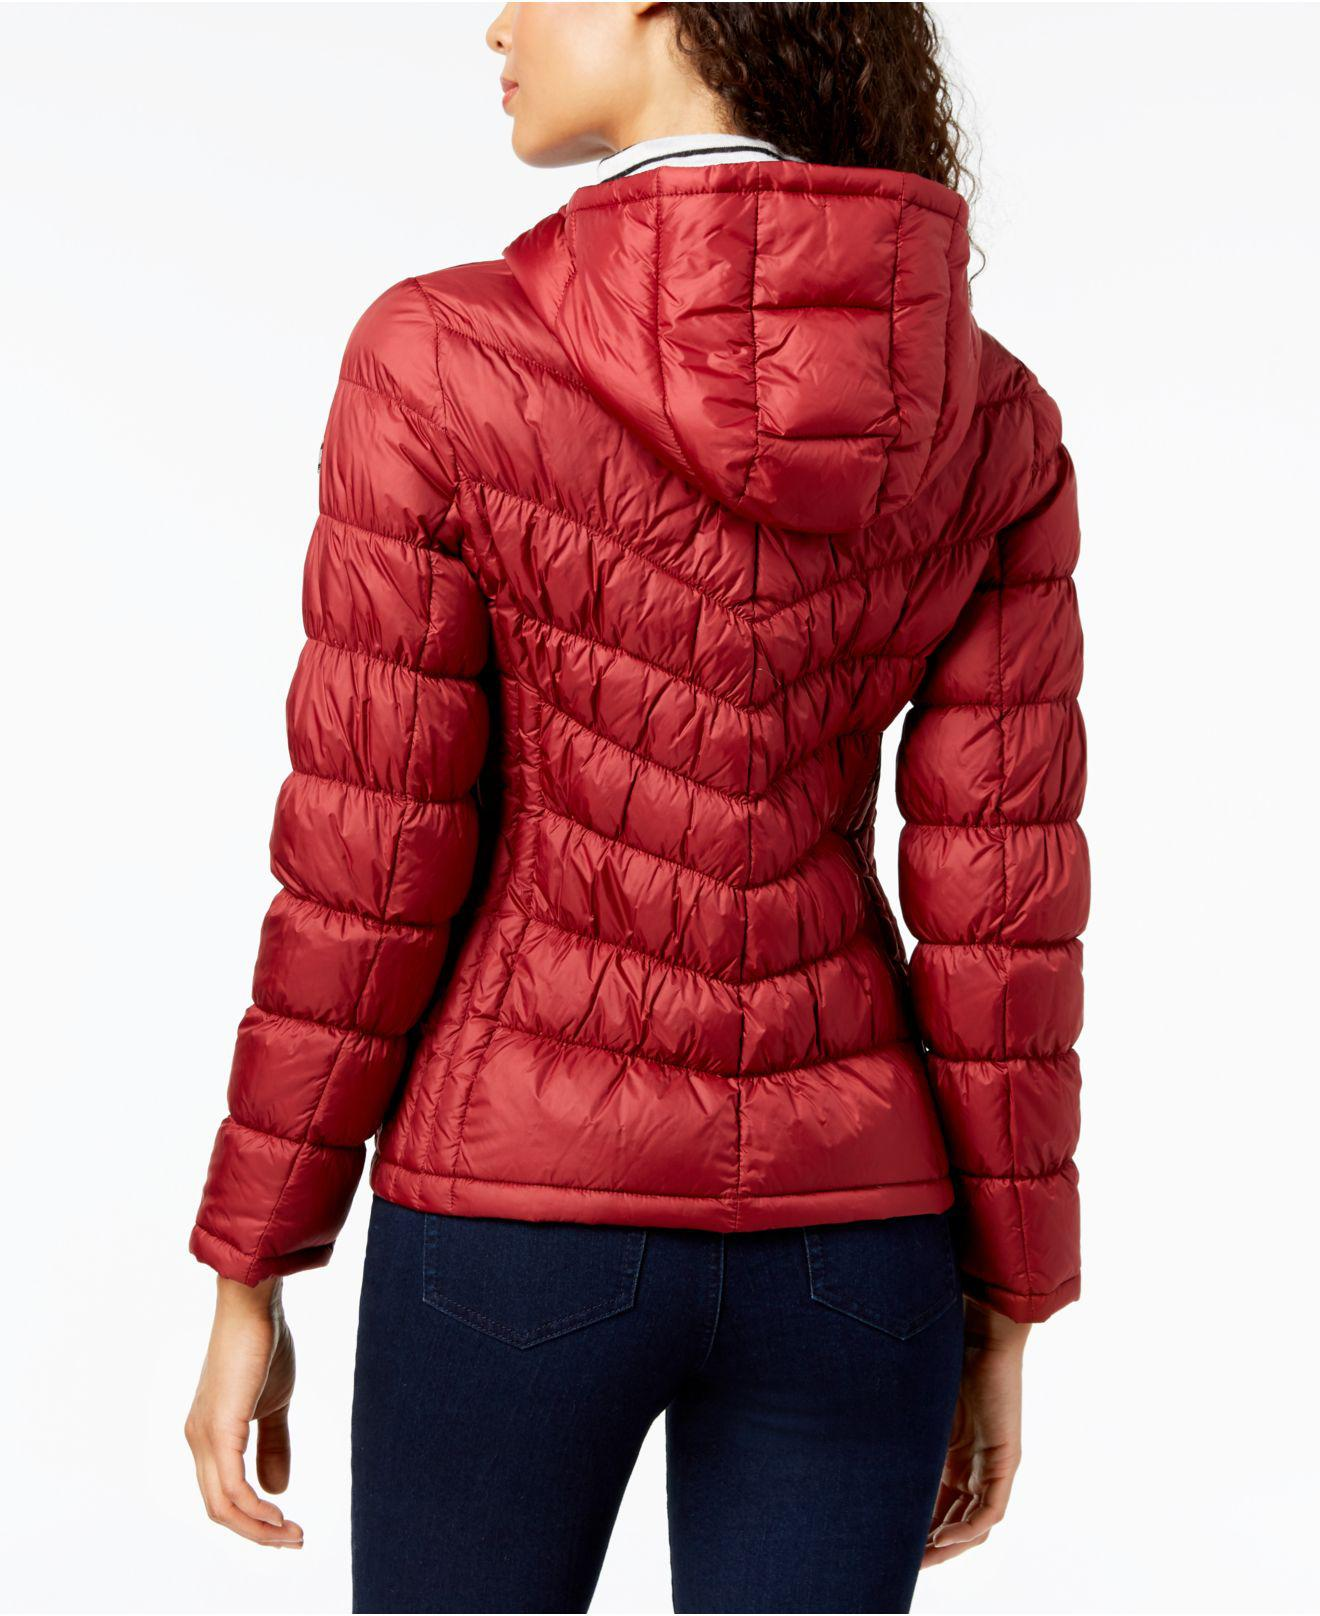 c6142d6efb0 Michael Kors Michael Hooded Packable Puffer Coat in Red - Save 5% - Lyst